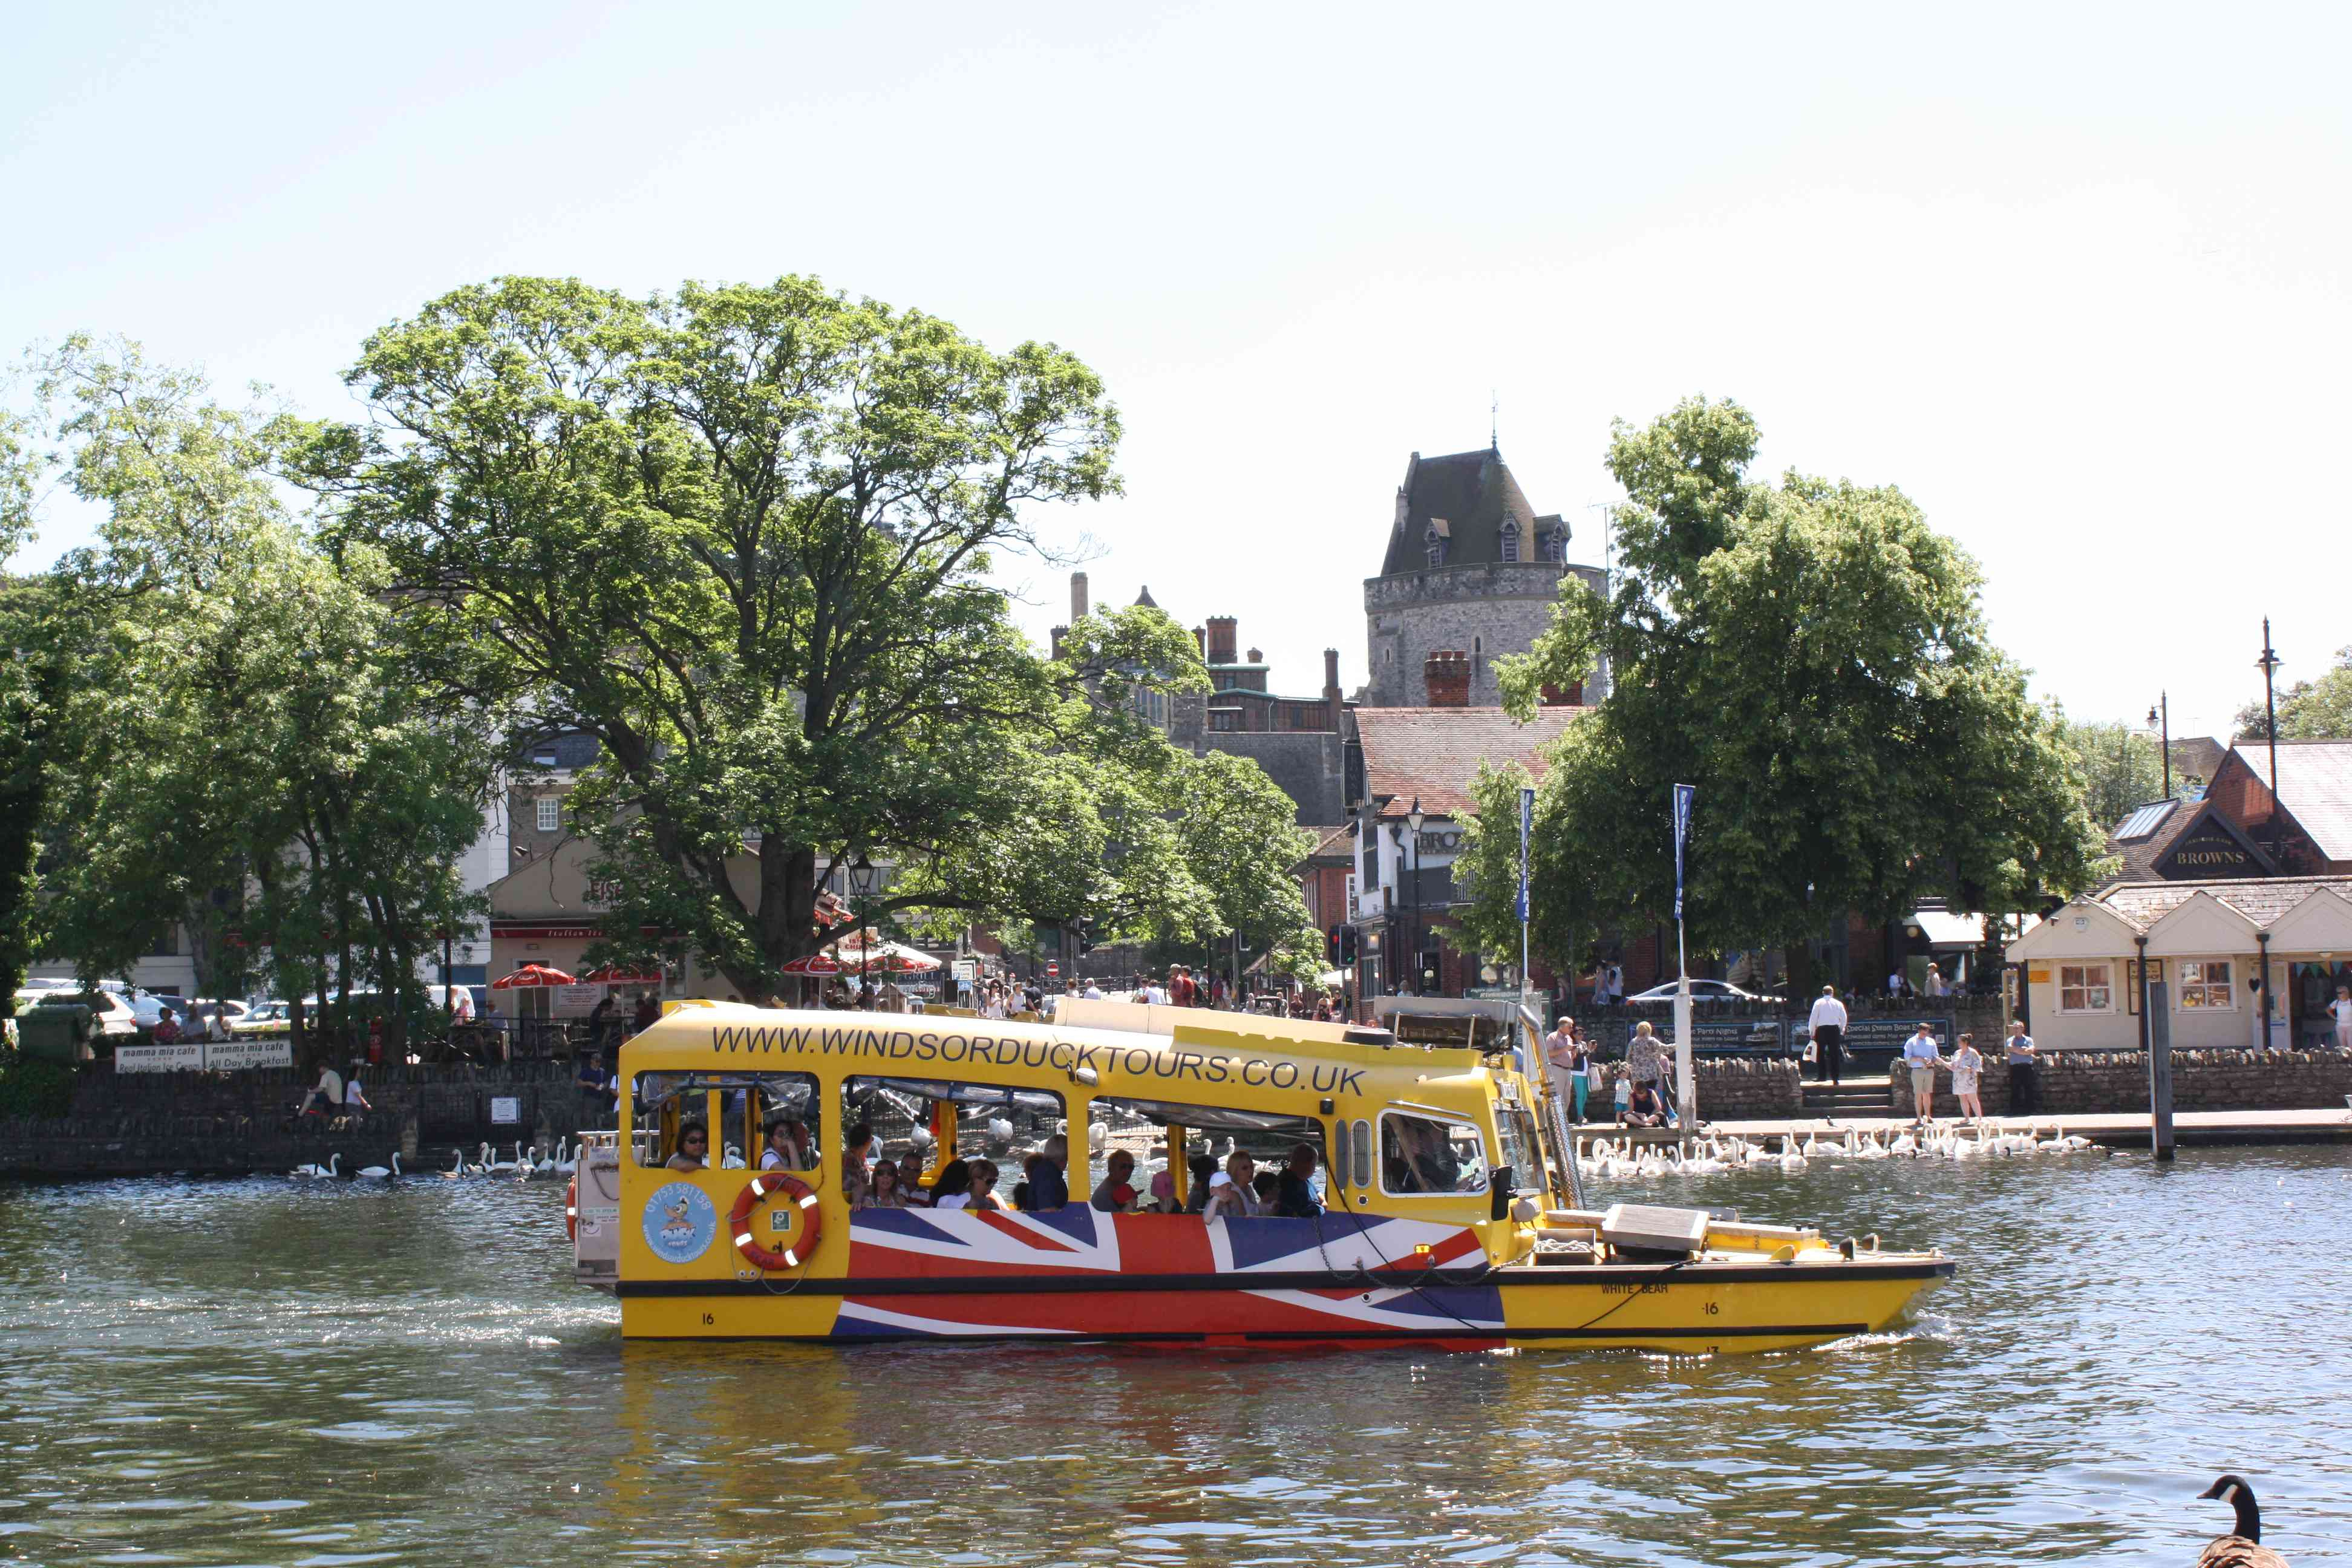 Yellow duck boat in the River Thames